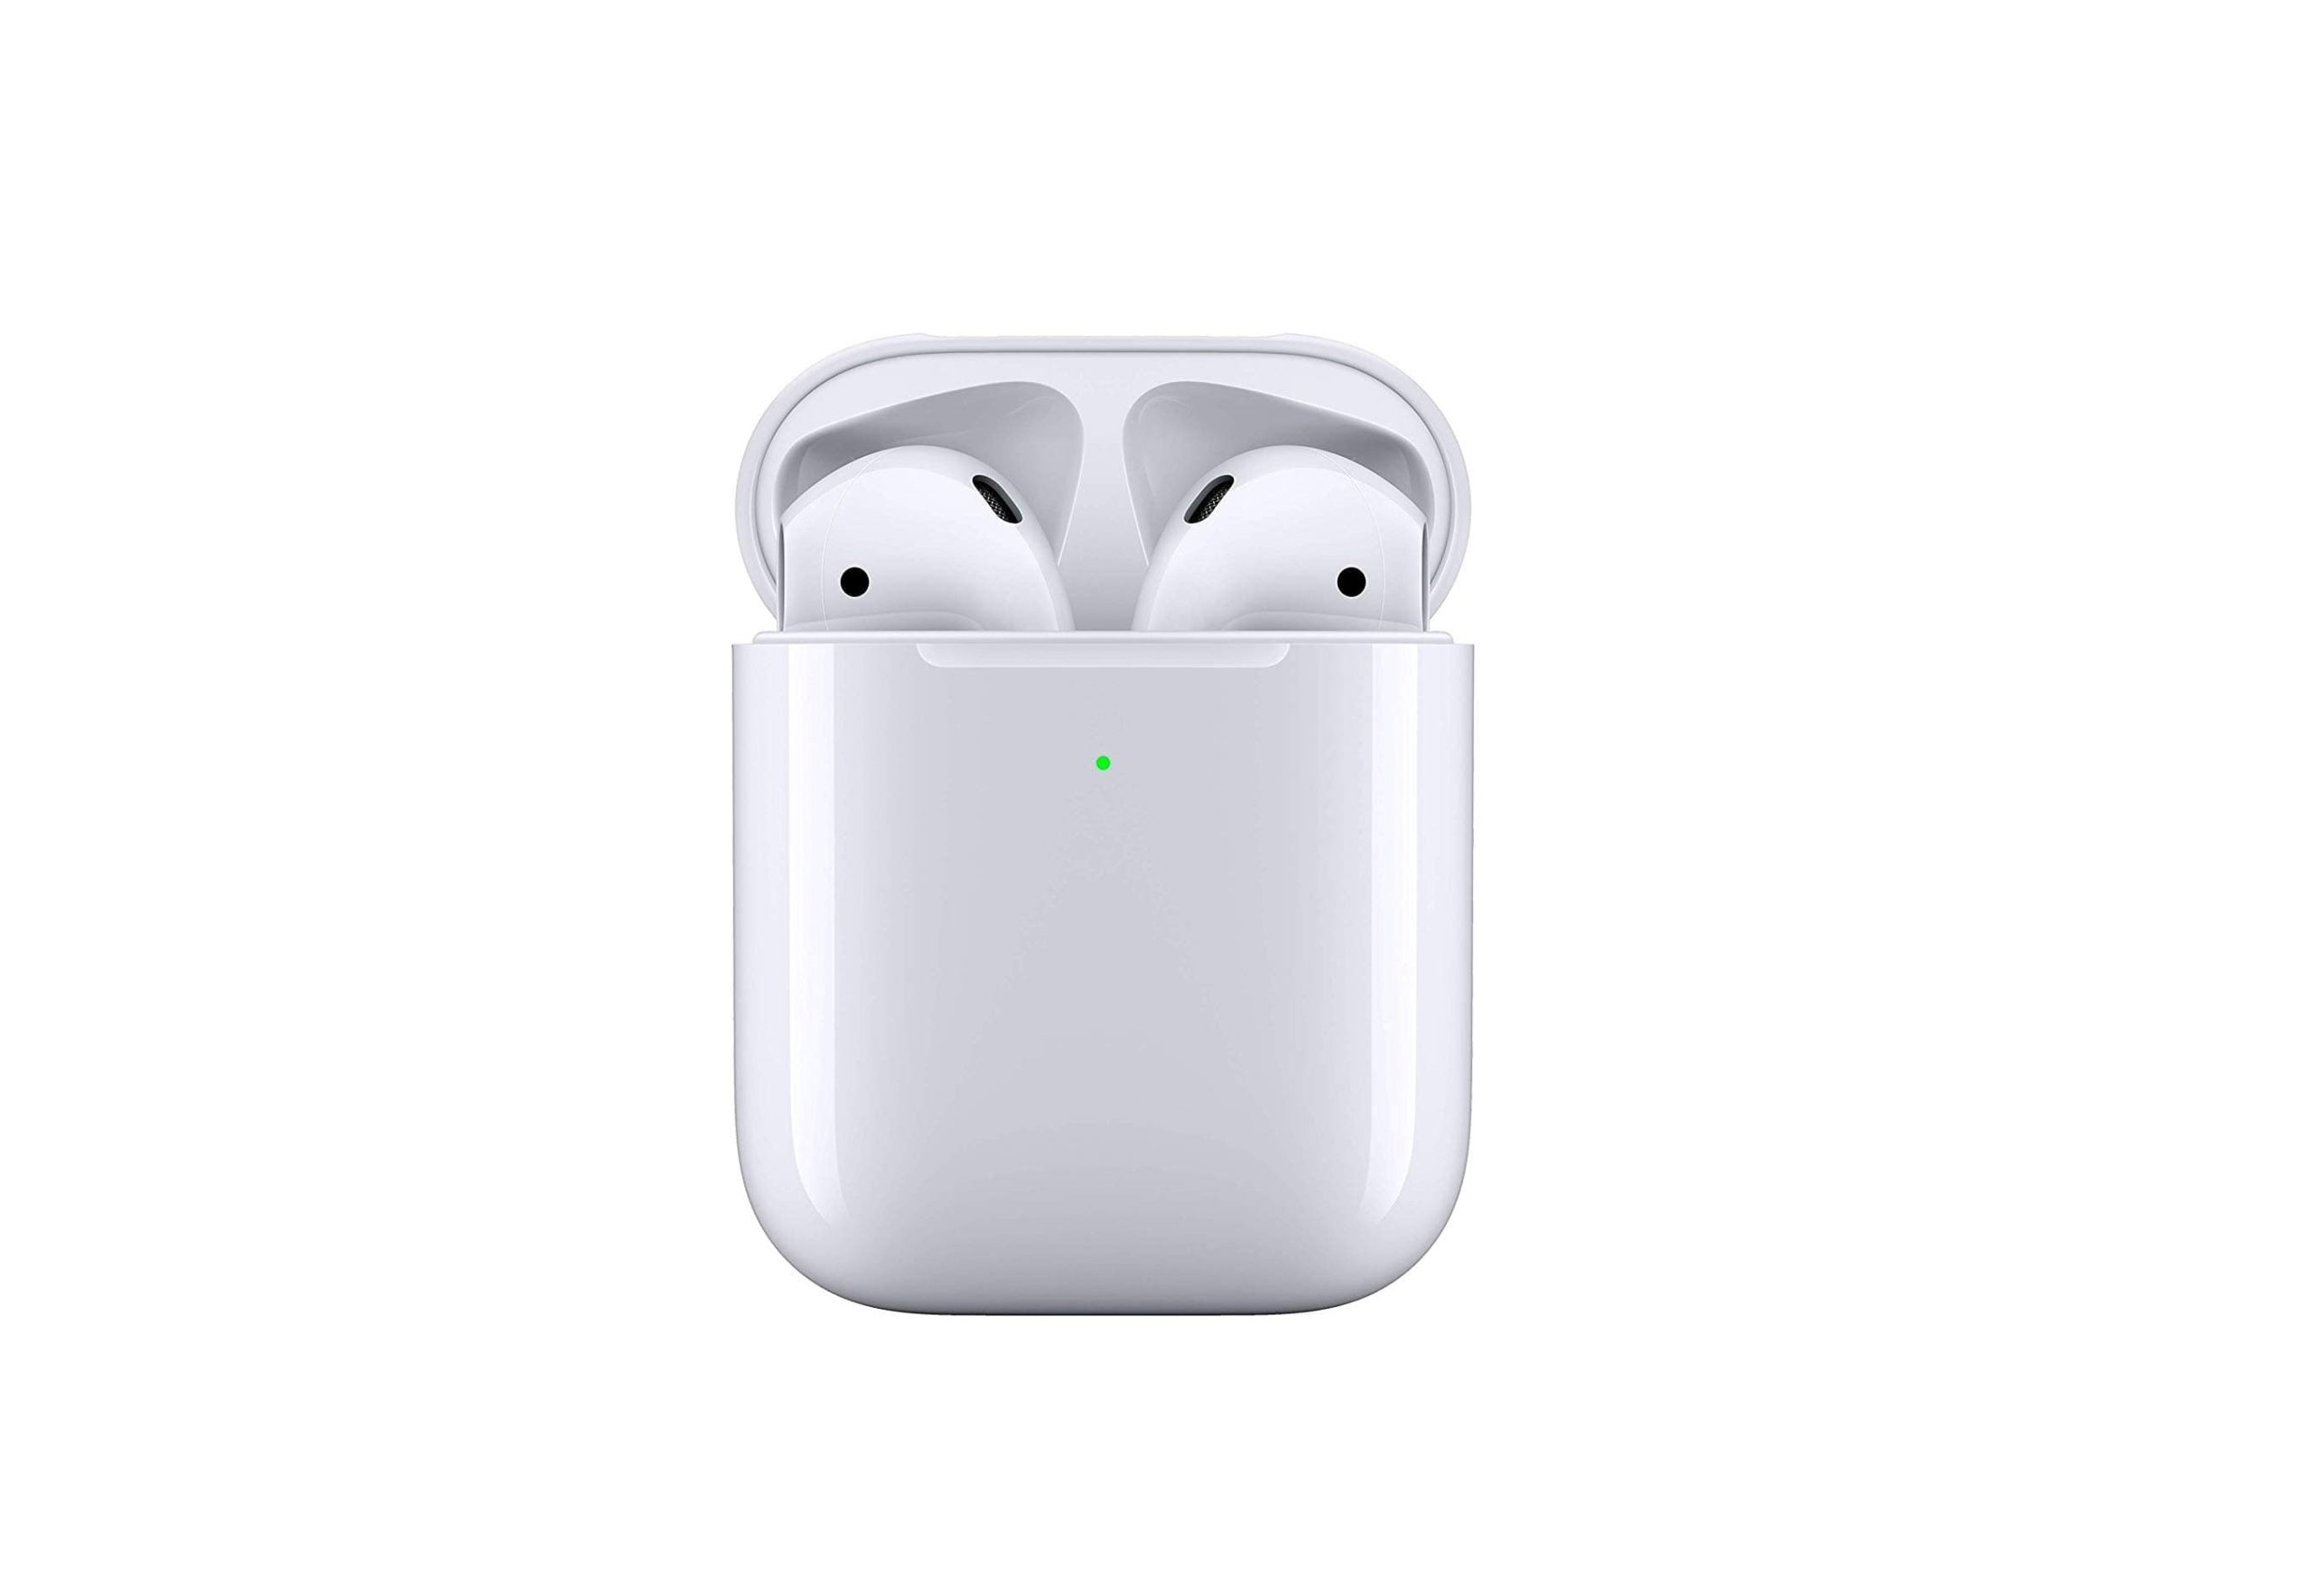 Hurry Up! Apple AirPods 2 Returns Back On Sale At Amazon For Just $129